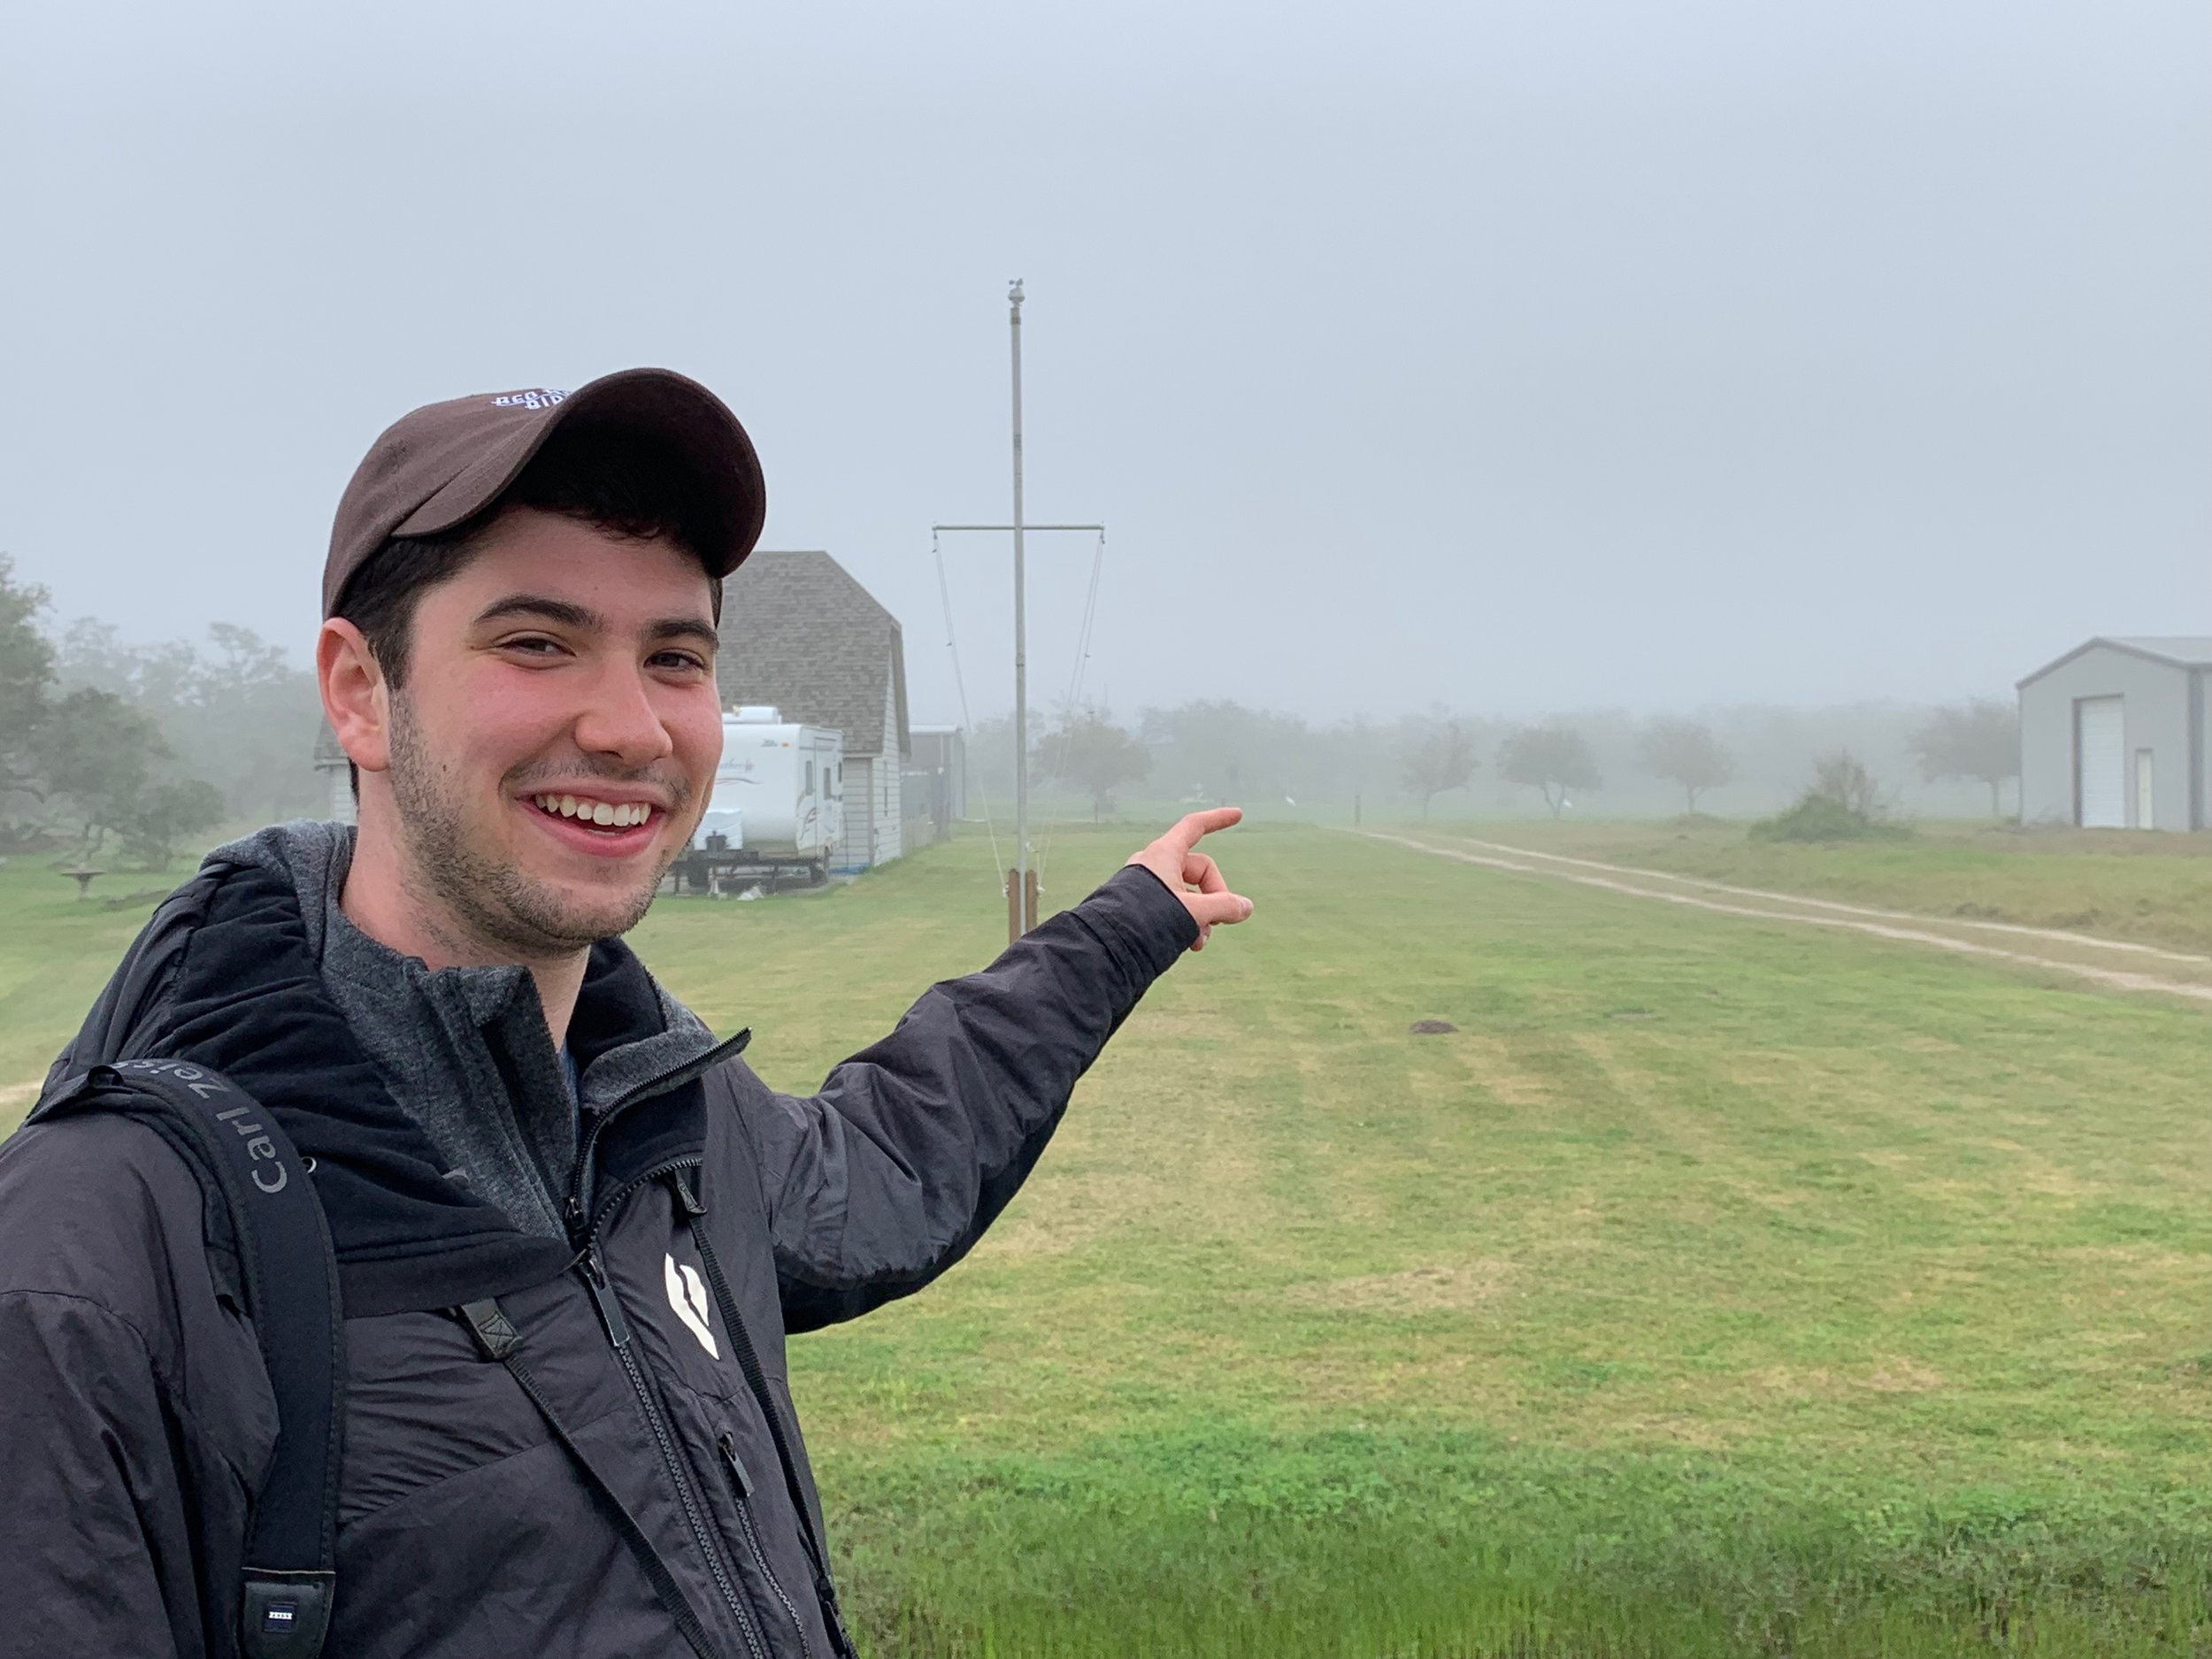 Nathan pointing to his 650th bird in the Lower 48, a Whooping Crane